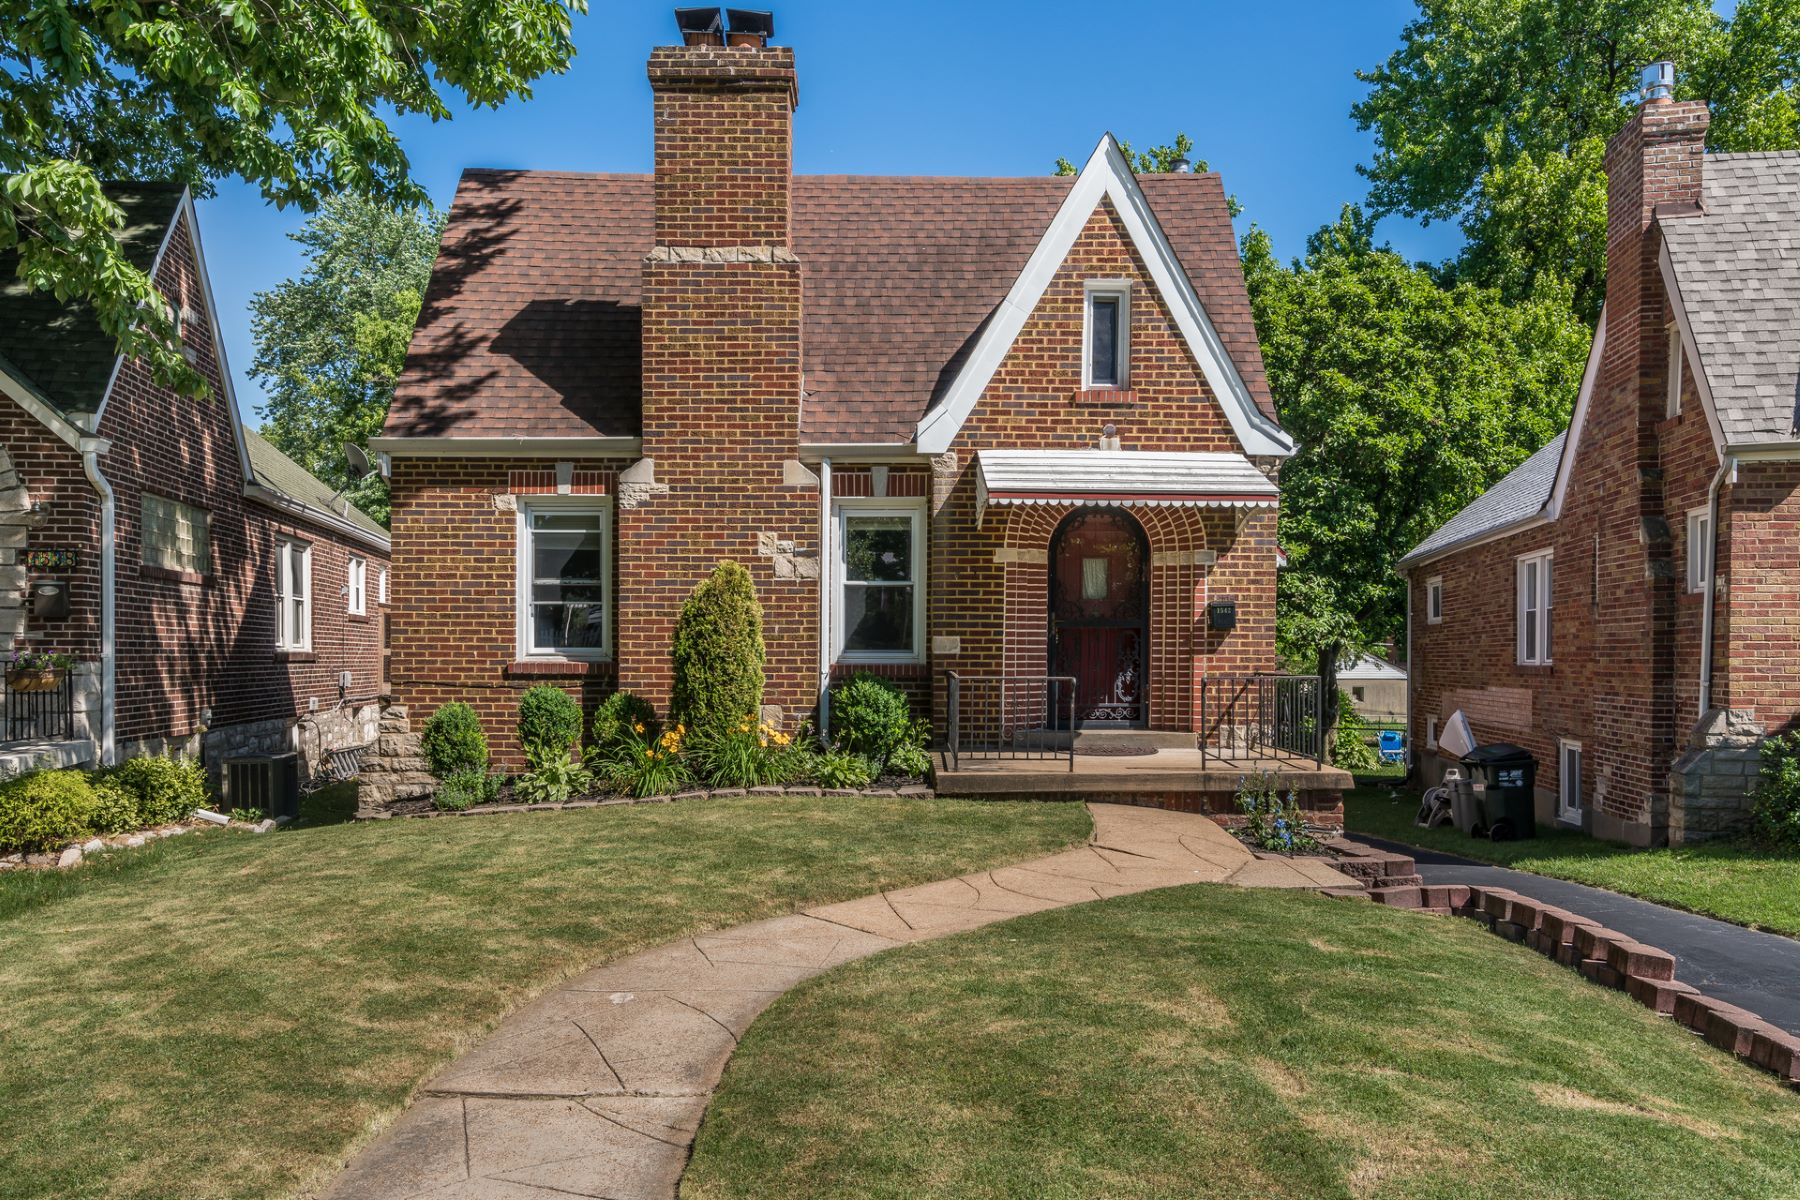 Single Family Homes for Sale at Charming Brick Tudor Home 1542 Collins Avenue Richmond Heights, Missouri 63117 United States